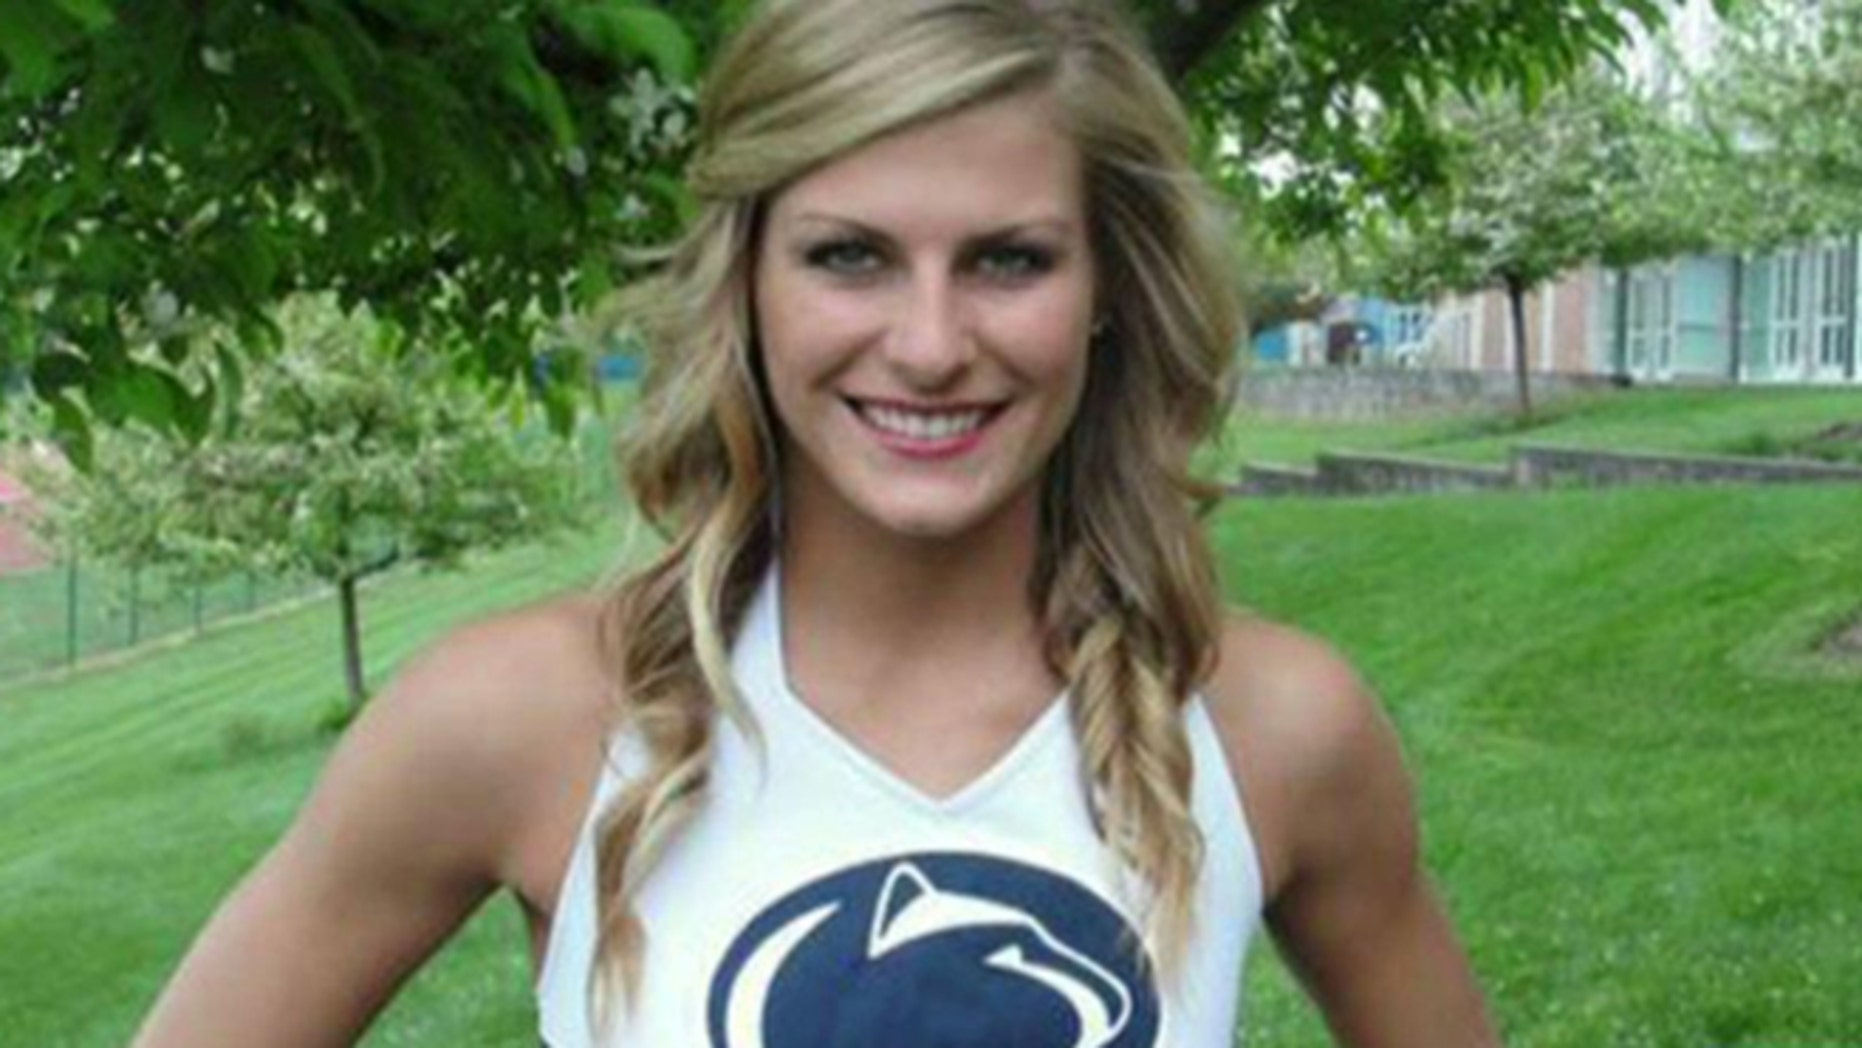 Paige Raque fell 39 feet from an apartment window during an off-campus party on Oct. 13, breaking her pelvis and suffering brain trauma. (Penn State Cheerleading)